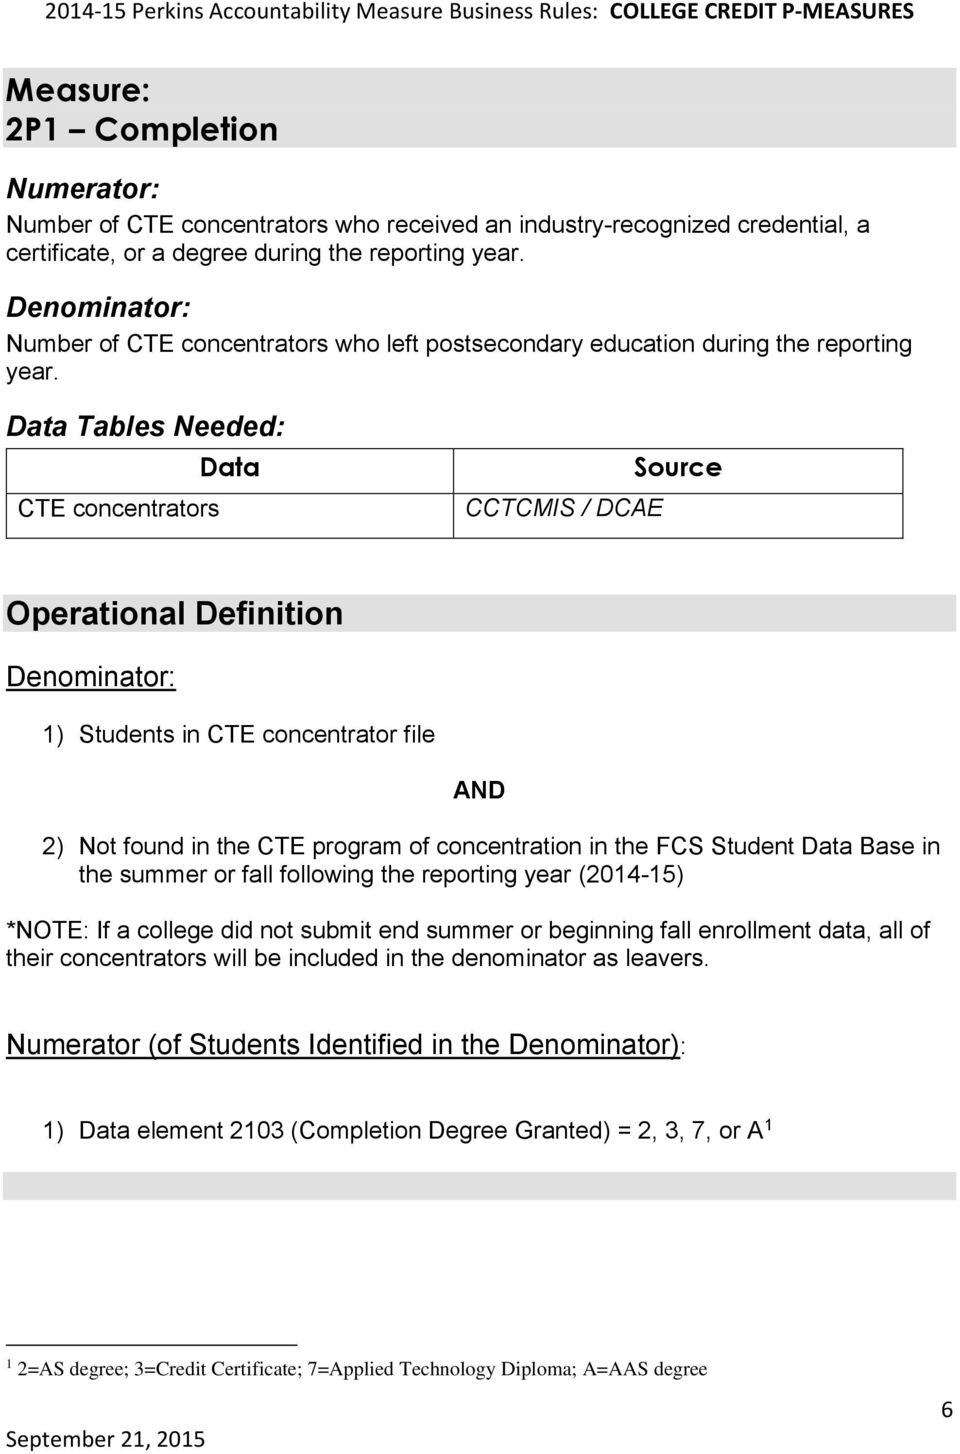 CTE concentrators CCTCMIS / DCAE 1) Students in CTE concentrator file 2) Not found in the CTE program of concentration in the FCS Student Base in the summer or fall following the reporting year